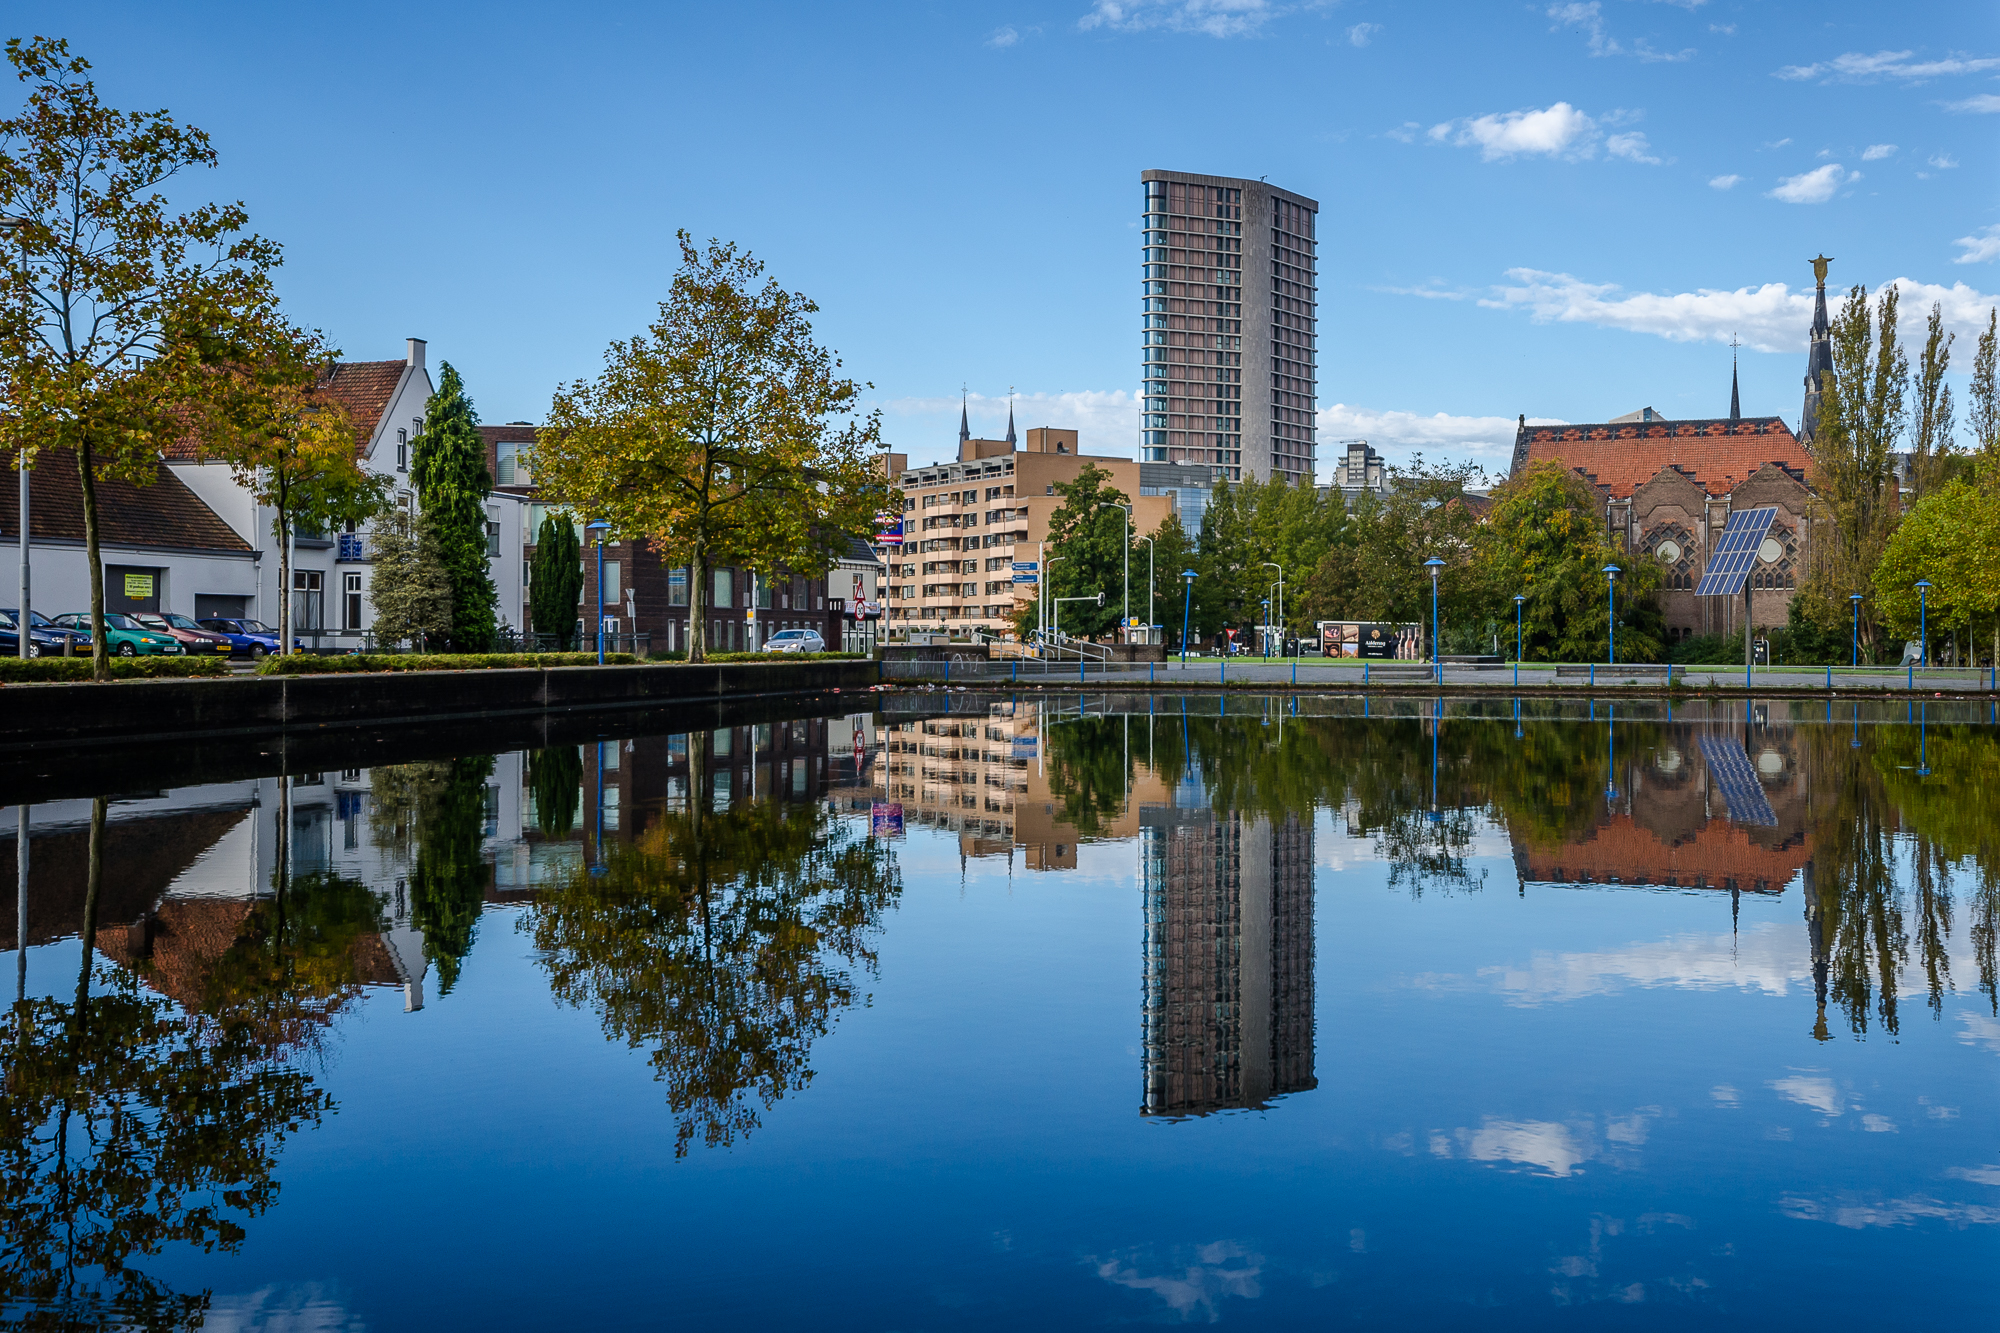 Eindhoven reflections